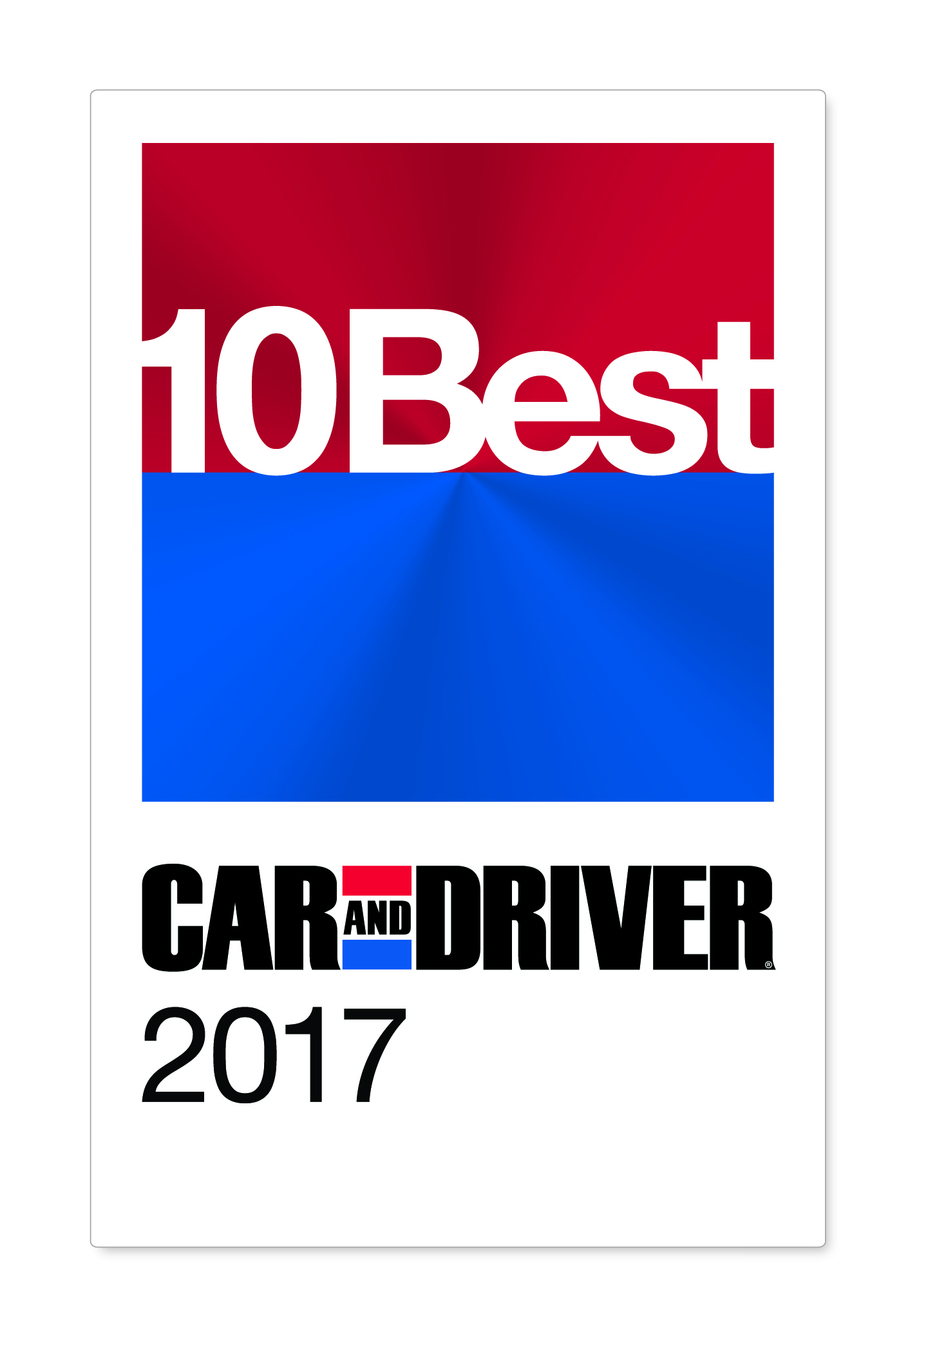 Car And Driver 10 Best >> Honda Accord Holds Crown In Car And Driver 10best Cars Award